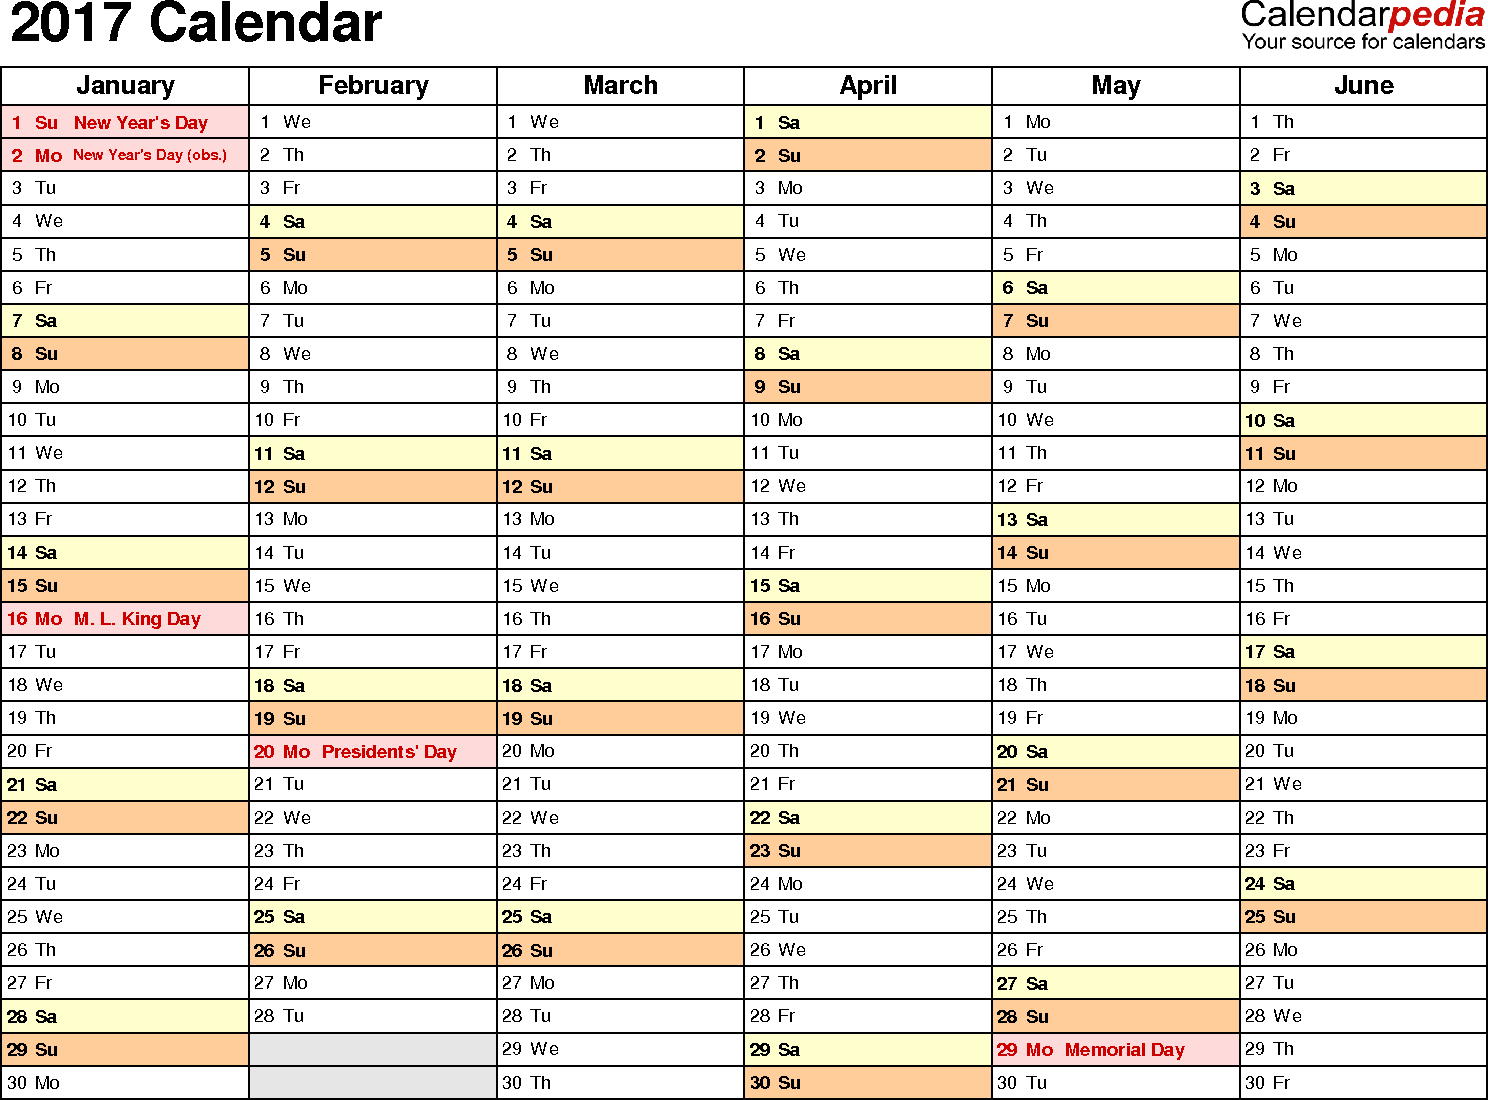 Ediblewildsus  Outstanding  Calendar  Download  Free Printable Excel Templates Xls With Engaging Template   Calendar For Excel Months Horizontally  Pages Landscape Orientation With Astounding Scatter Plot Excel Also Excel Electric In Addition Arrow Keys Not Working In Excel And If In Excel As Well As Division In Excel Additionally Export Pdf To Excel From Calendarpediacom With Ediblewildsus  Engaging  Calendar  Download  Free Printable Excel Templates Xls With Astounding Template   Calendar For Excel Months Horizontally  Pages Landscape Orientation And Outstanding Scatter Plot Excel Also Excel Electric In Addition Arrow Keys Not Working In Excel From Calendarpediacom